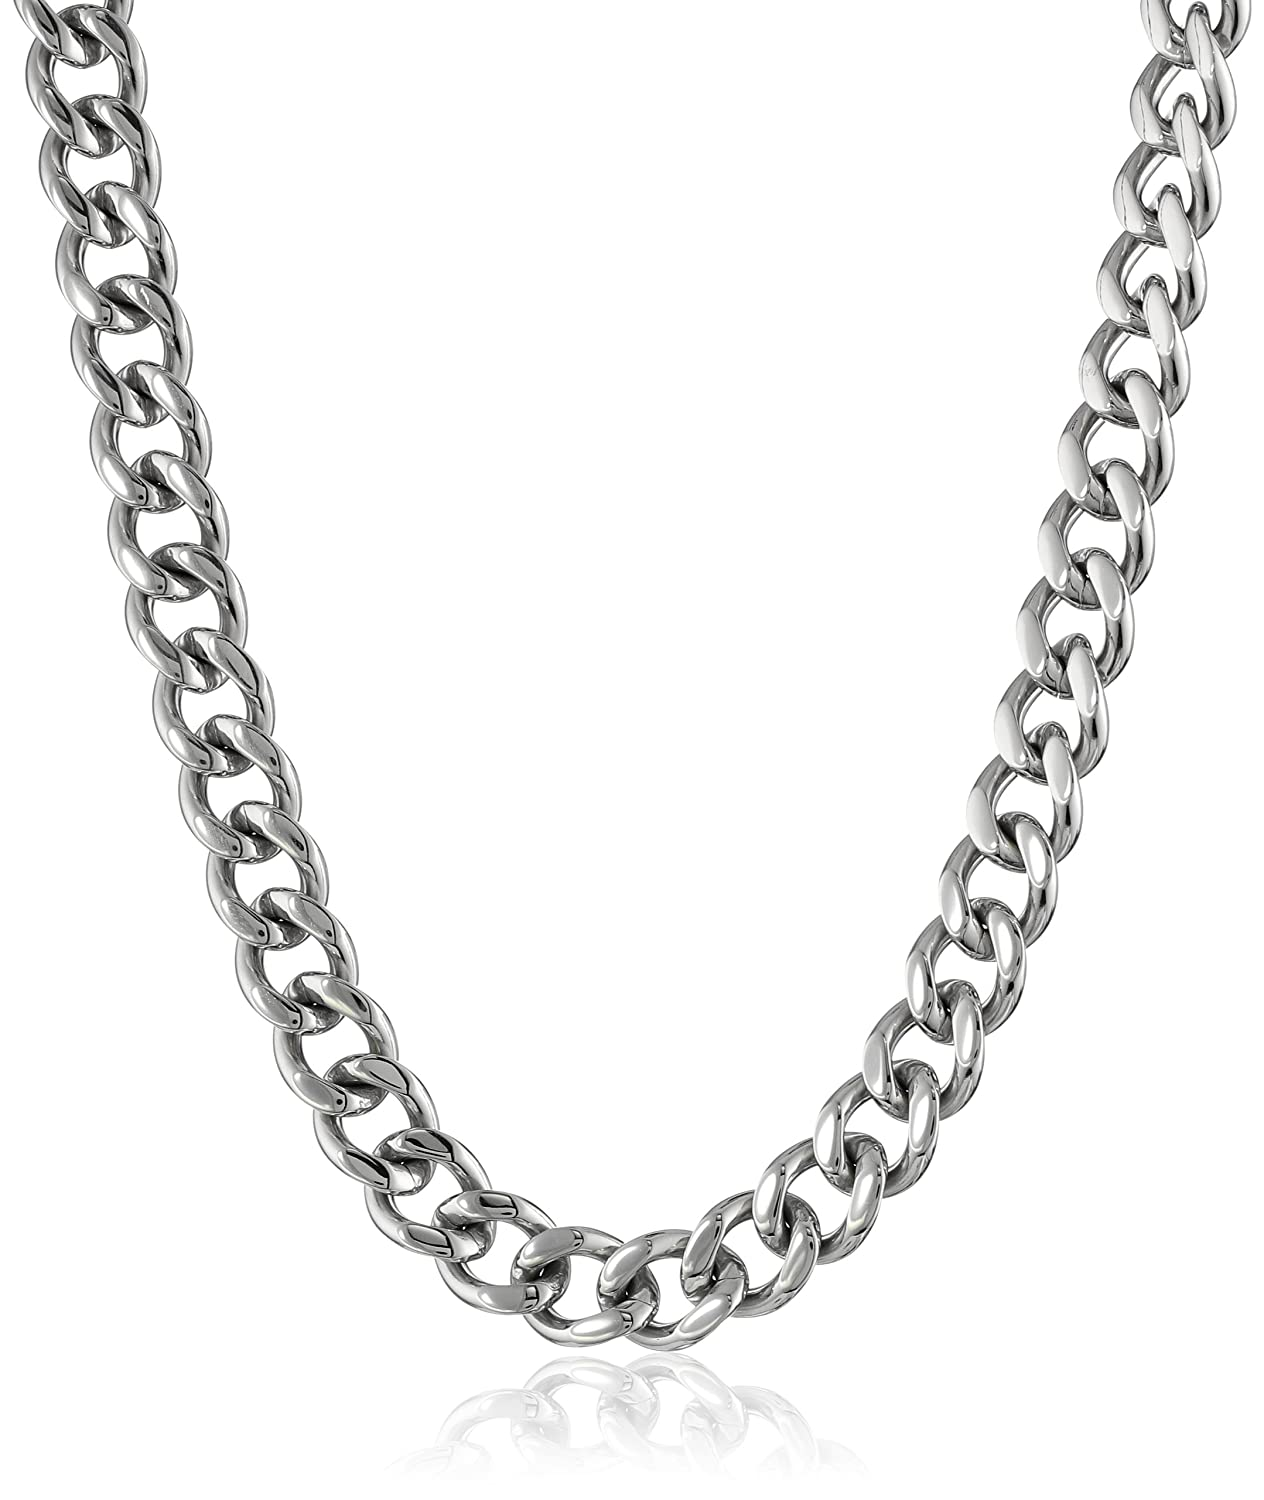 jewelry necklace steel sutton product stainless mens razor chain men chains